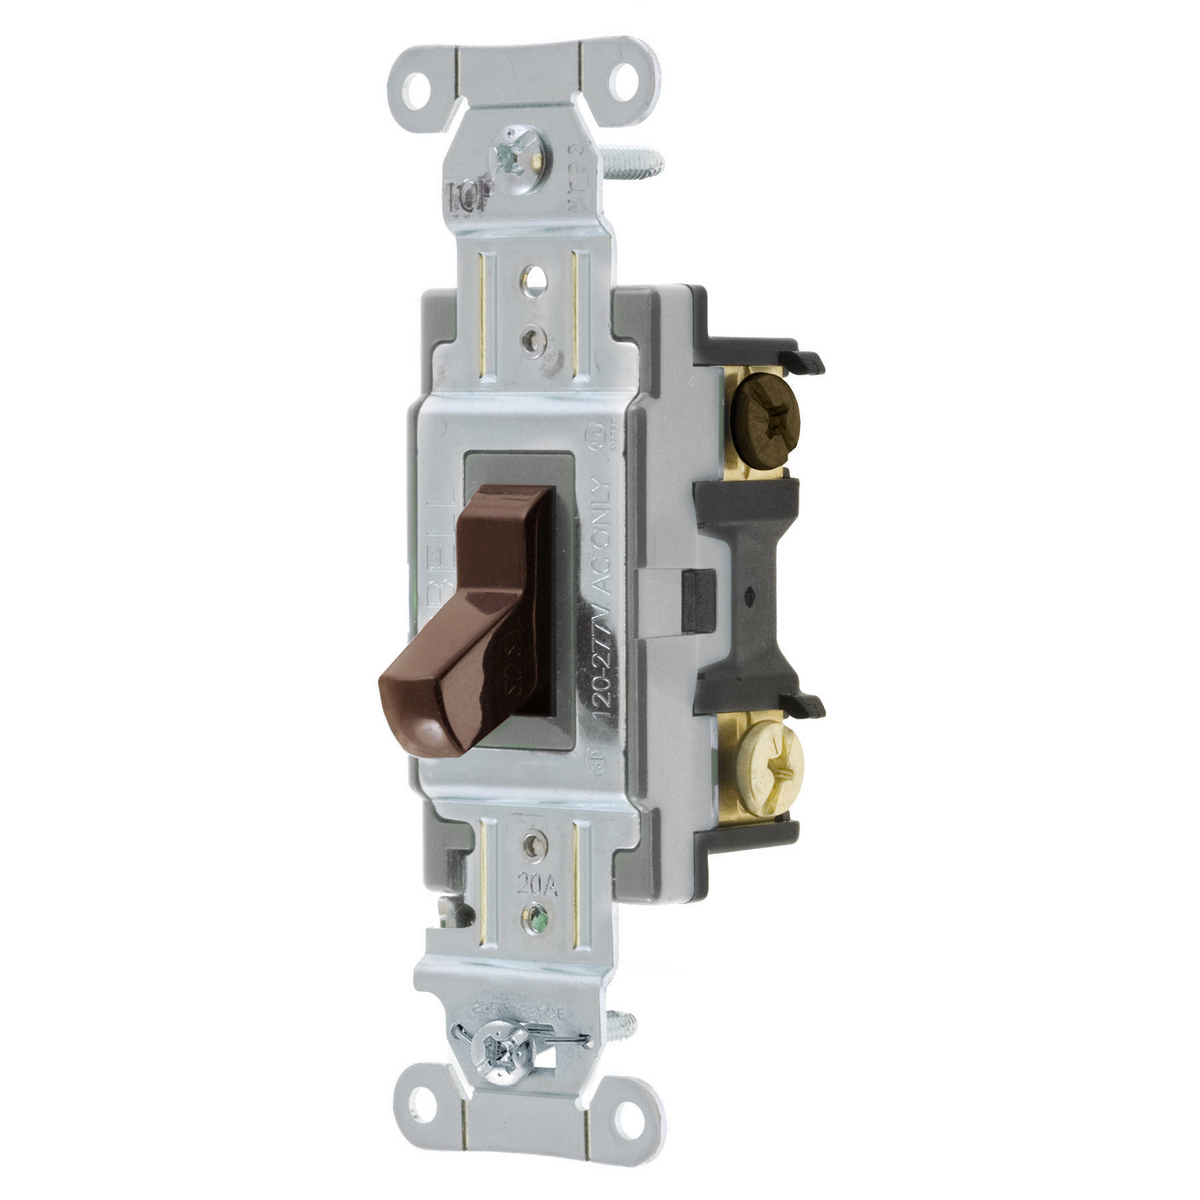 Hubbell CSB320 SWITCH, COMM, 3W, 20A 120/277V, B+S, BR